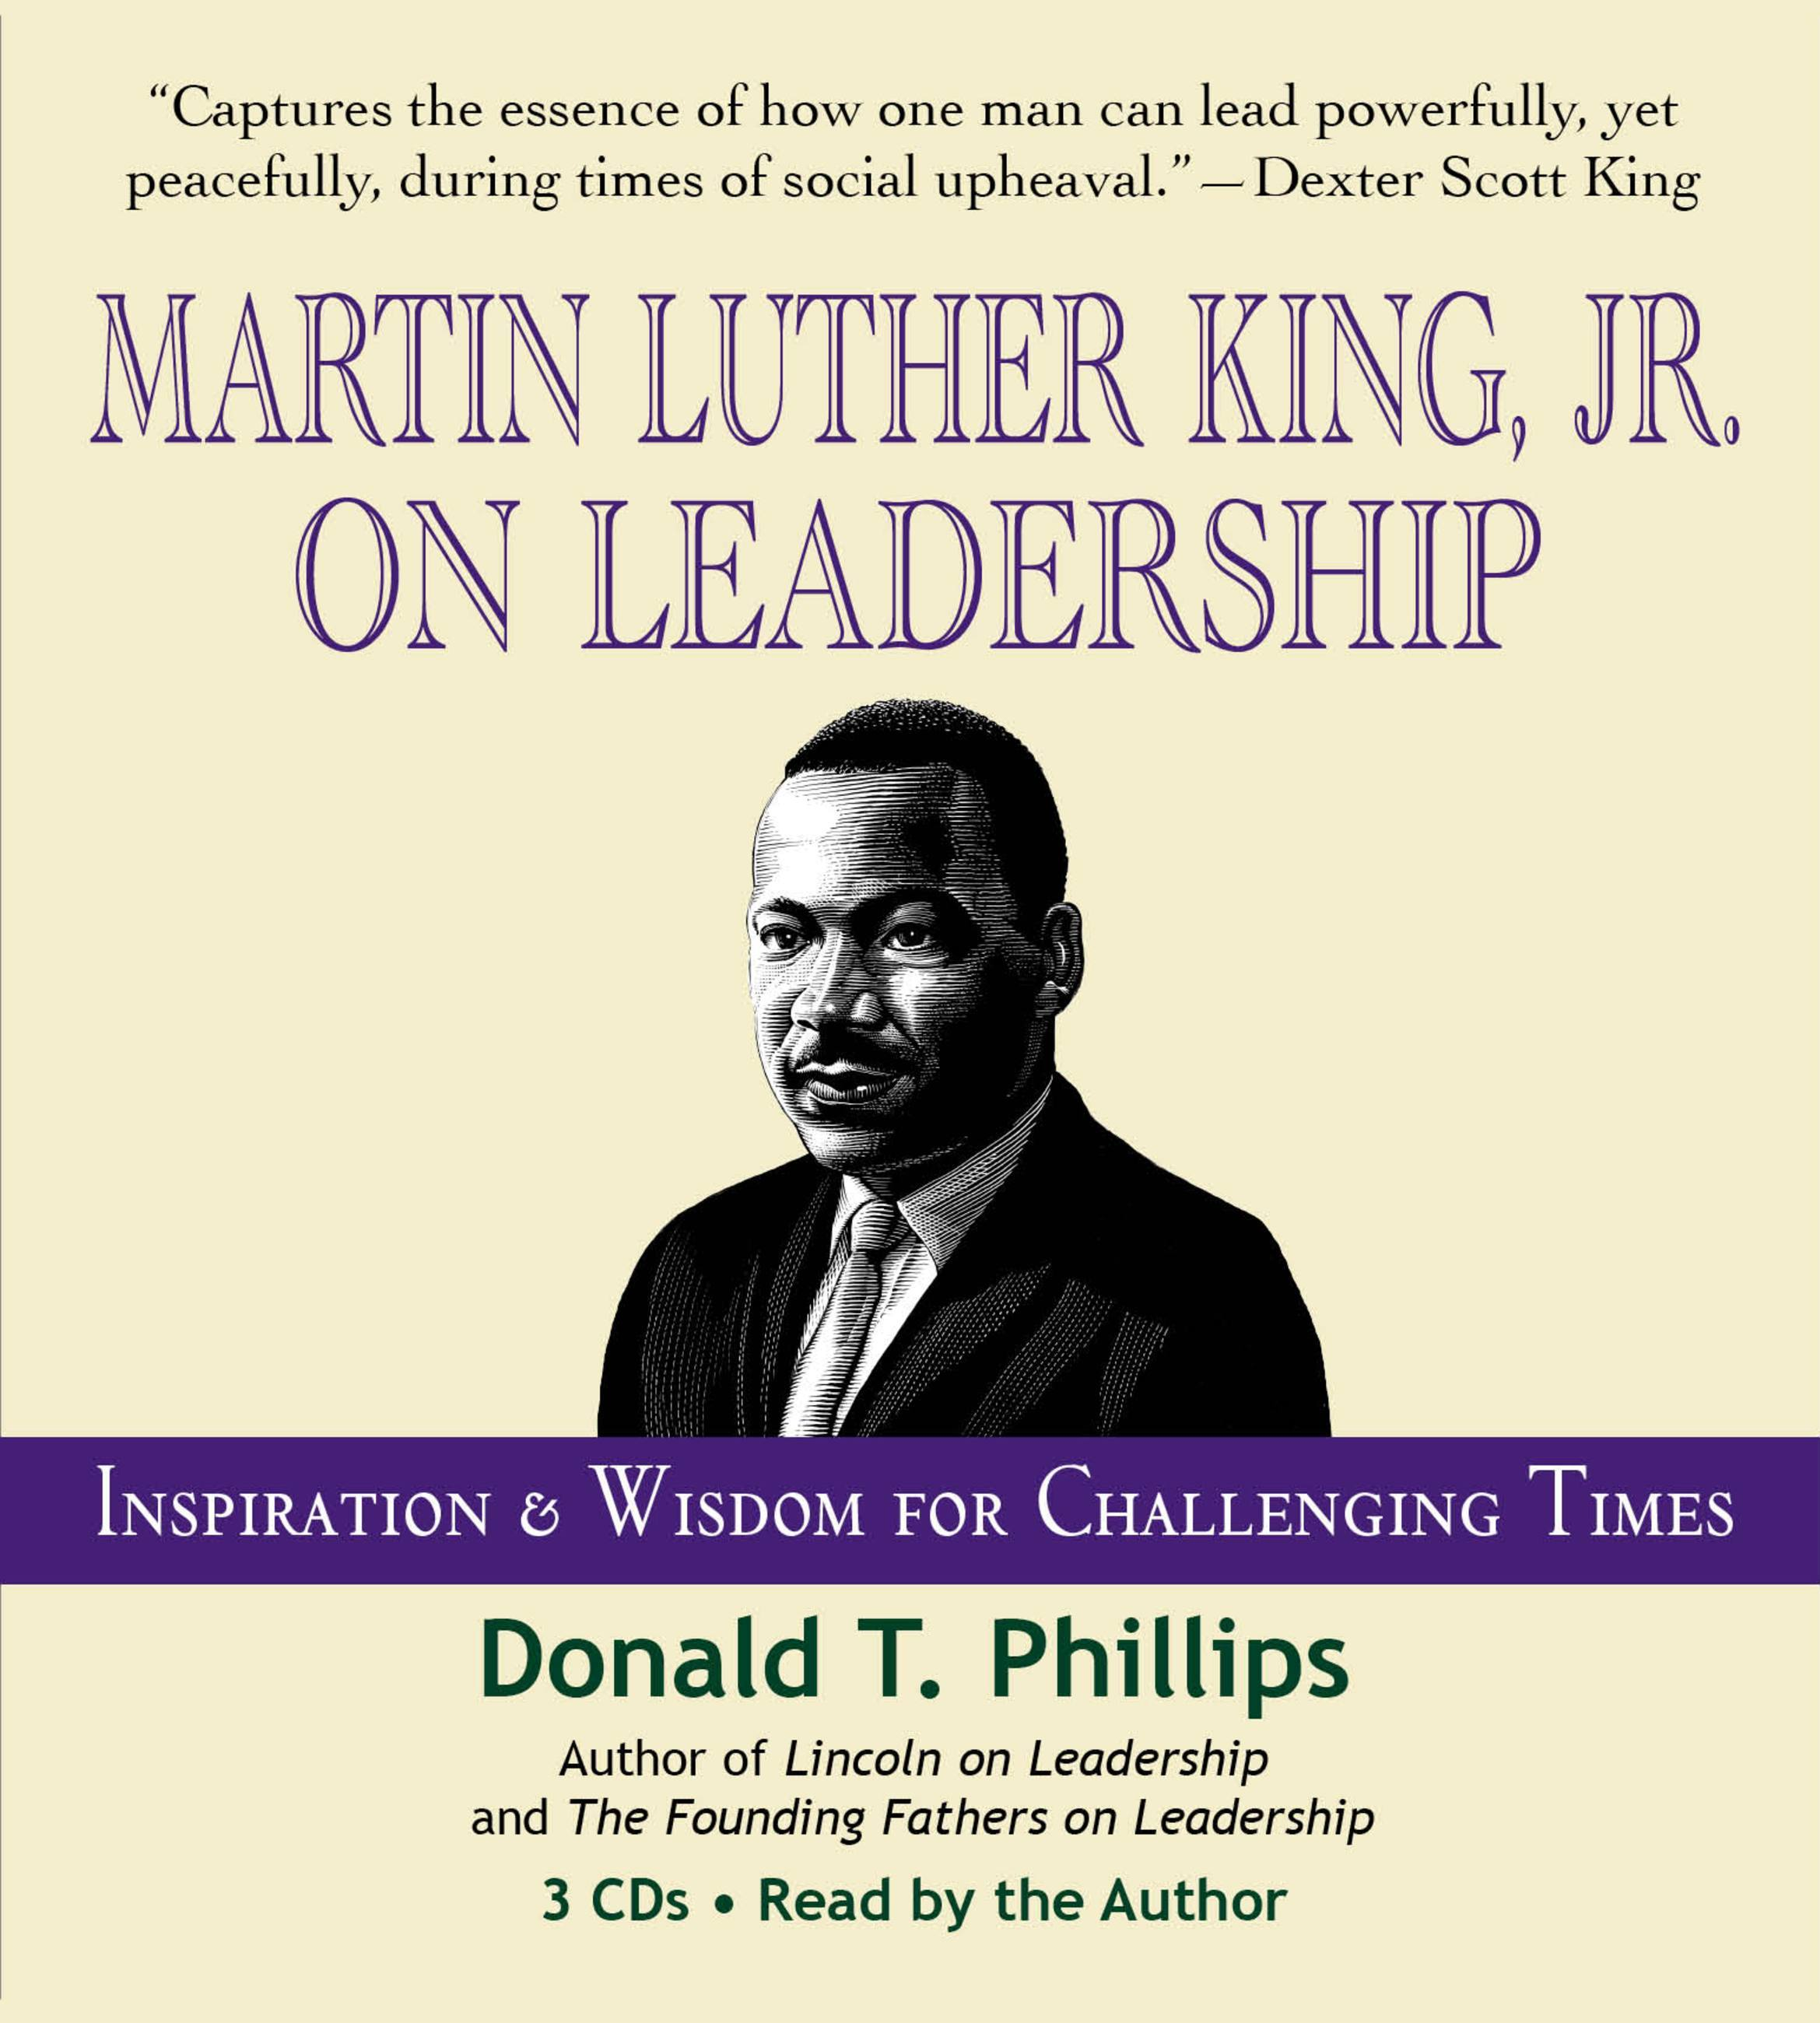 an analysis of martin luther king jr as a powerful leader Martin luther king jr was born in atlanta georgia, the second son of martin luther king sr and alberta williams king martin luther king jr was by vocation a baptist minister he was in the fourth generation of his family to take up this vocation.